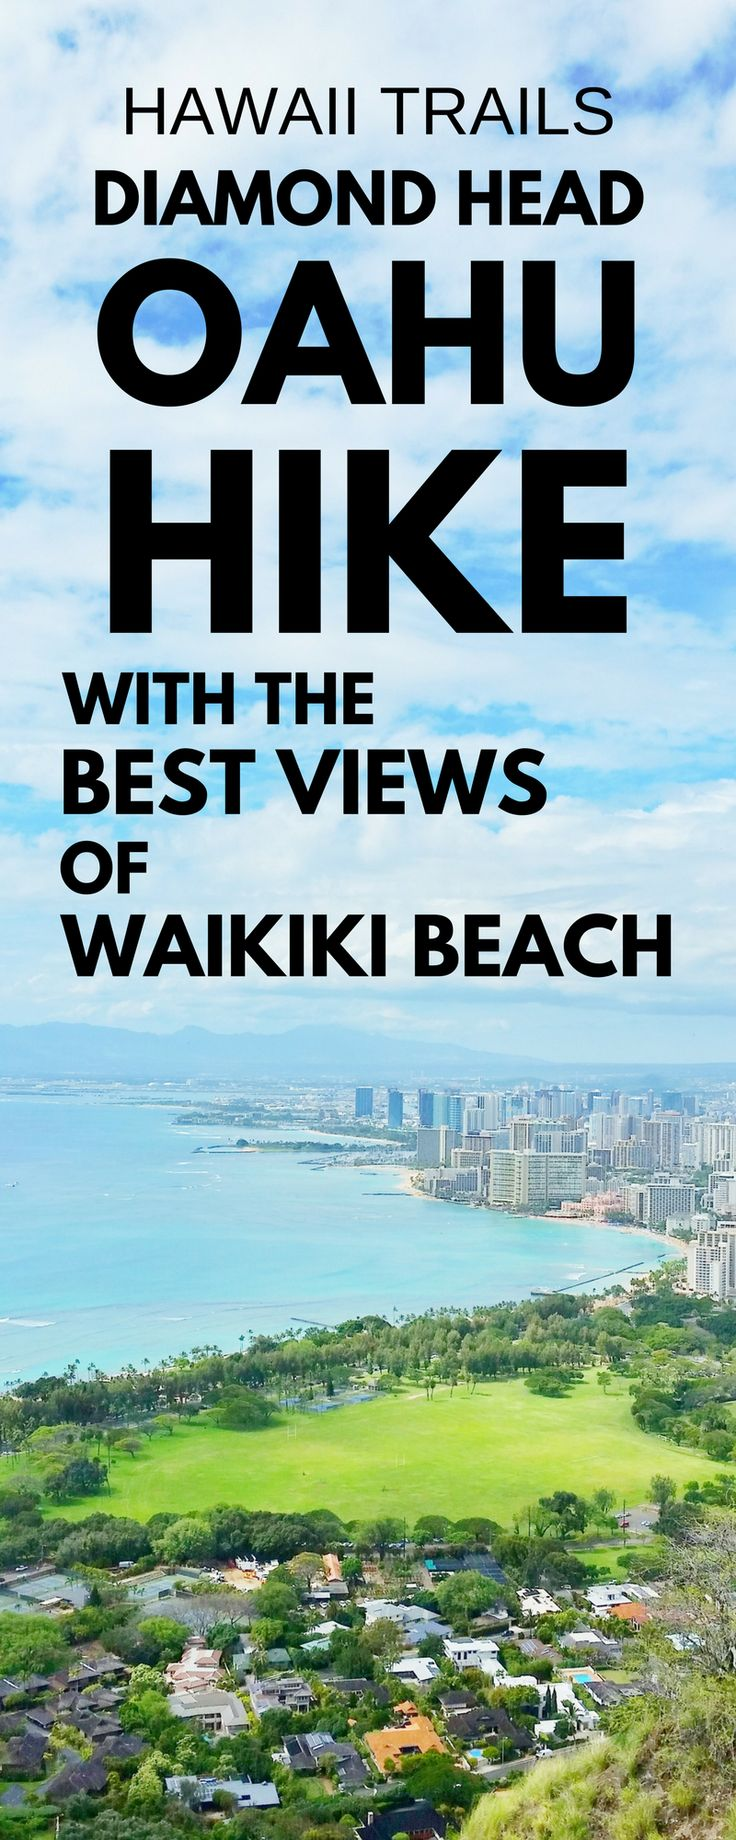 Best Oahu hikes with some of the best views of Waikiki Beach: Diamond Head Hike! US hiking trails in Hawaii, hikes on Oahu to choose on Hawaii vacation!Doing best hiking trails on Oahu gives things to do with nearby beaches for swimming, snorkeling, and to see turtles! Planning tips for this crater hike trail summit near Honolulu with what to wear hiking in Hawaii and what to pack and add to Hawaii packing list.Outdoor travel destinations, bucket list, budget adventures! #hawaii #oahu